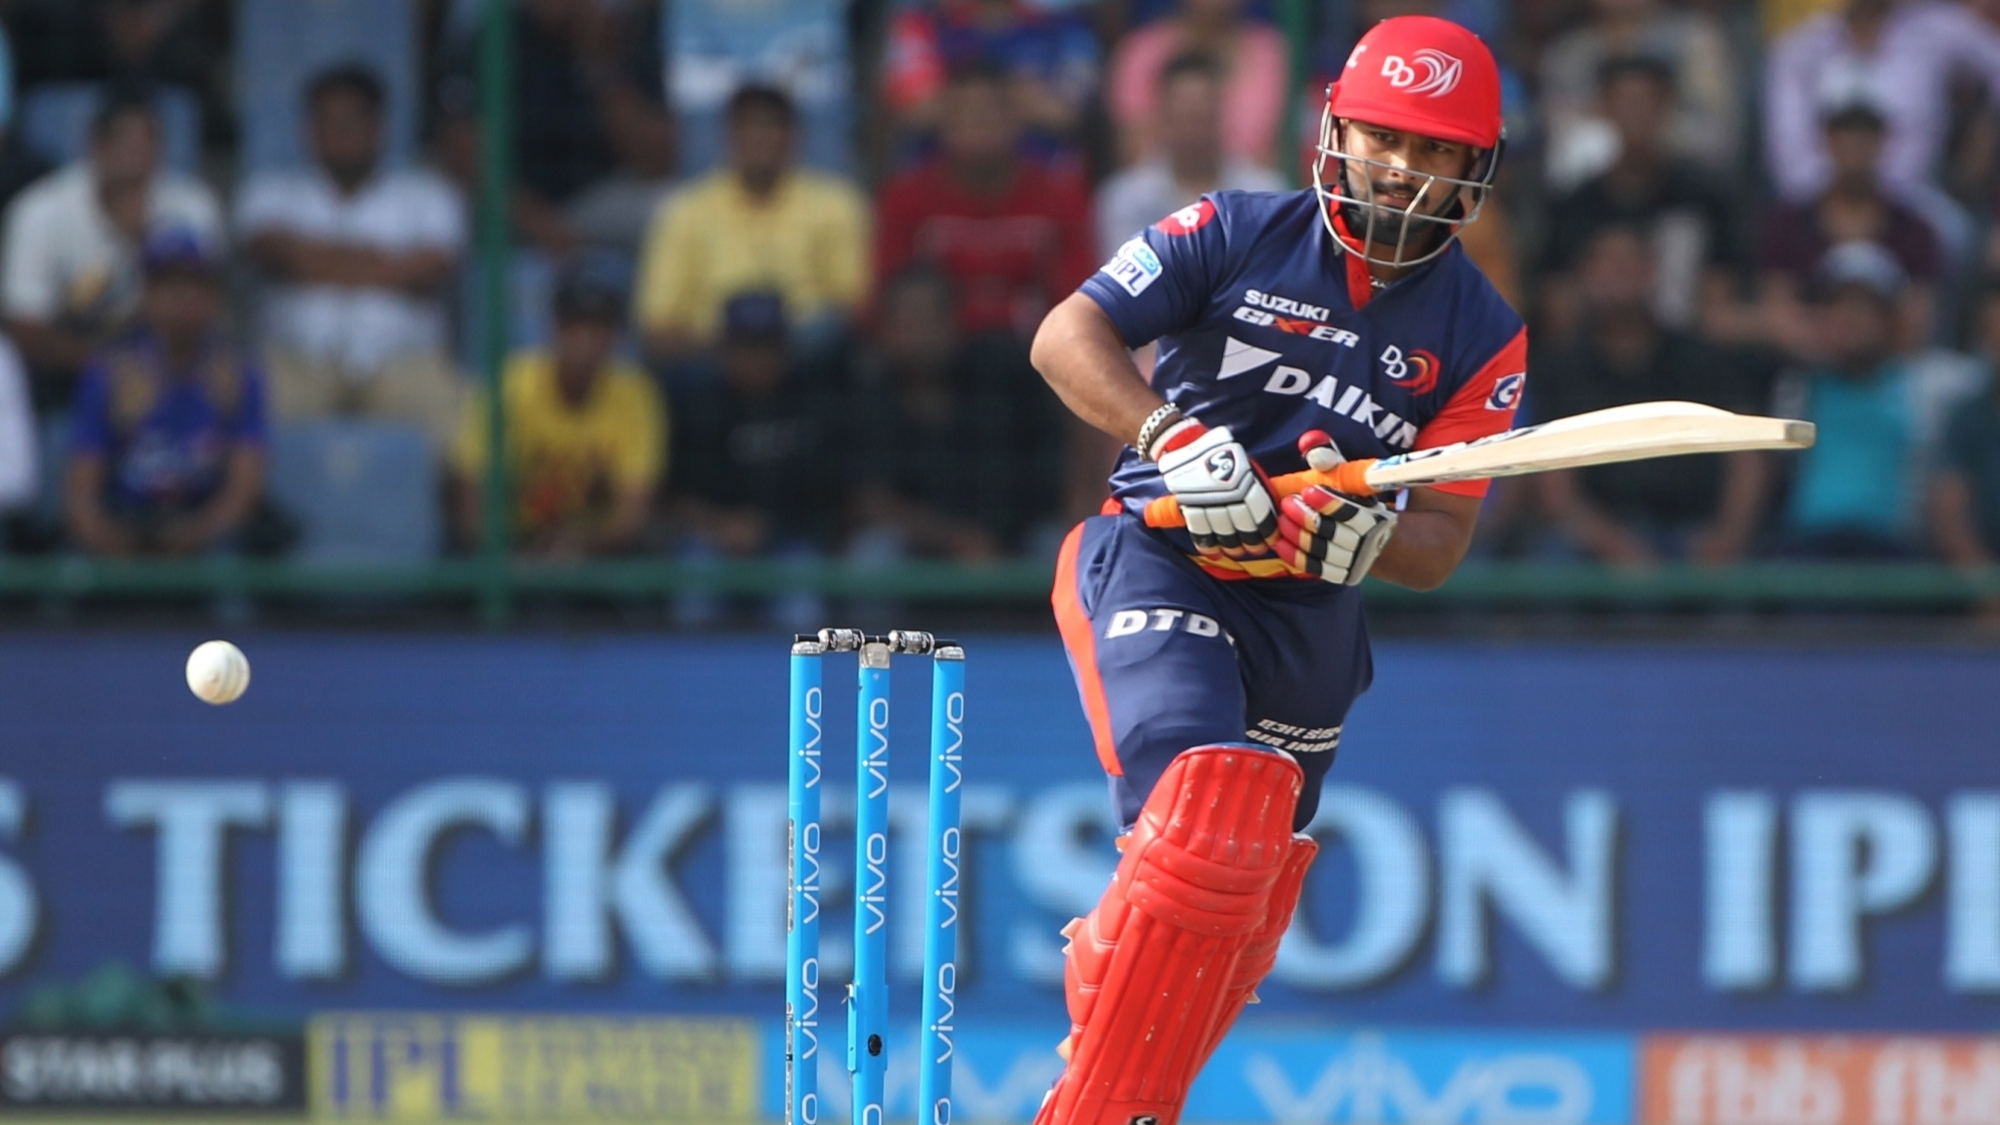 IPL 2018: I would have loved to win more matches for Delhi Daredevils, says Rishabh Pant